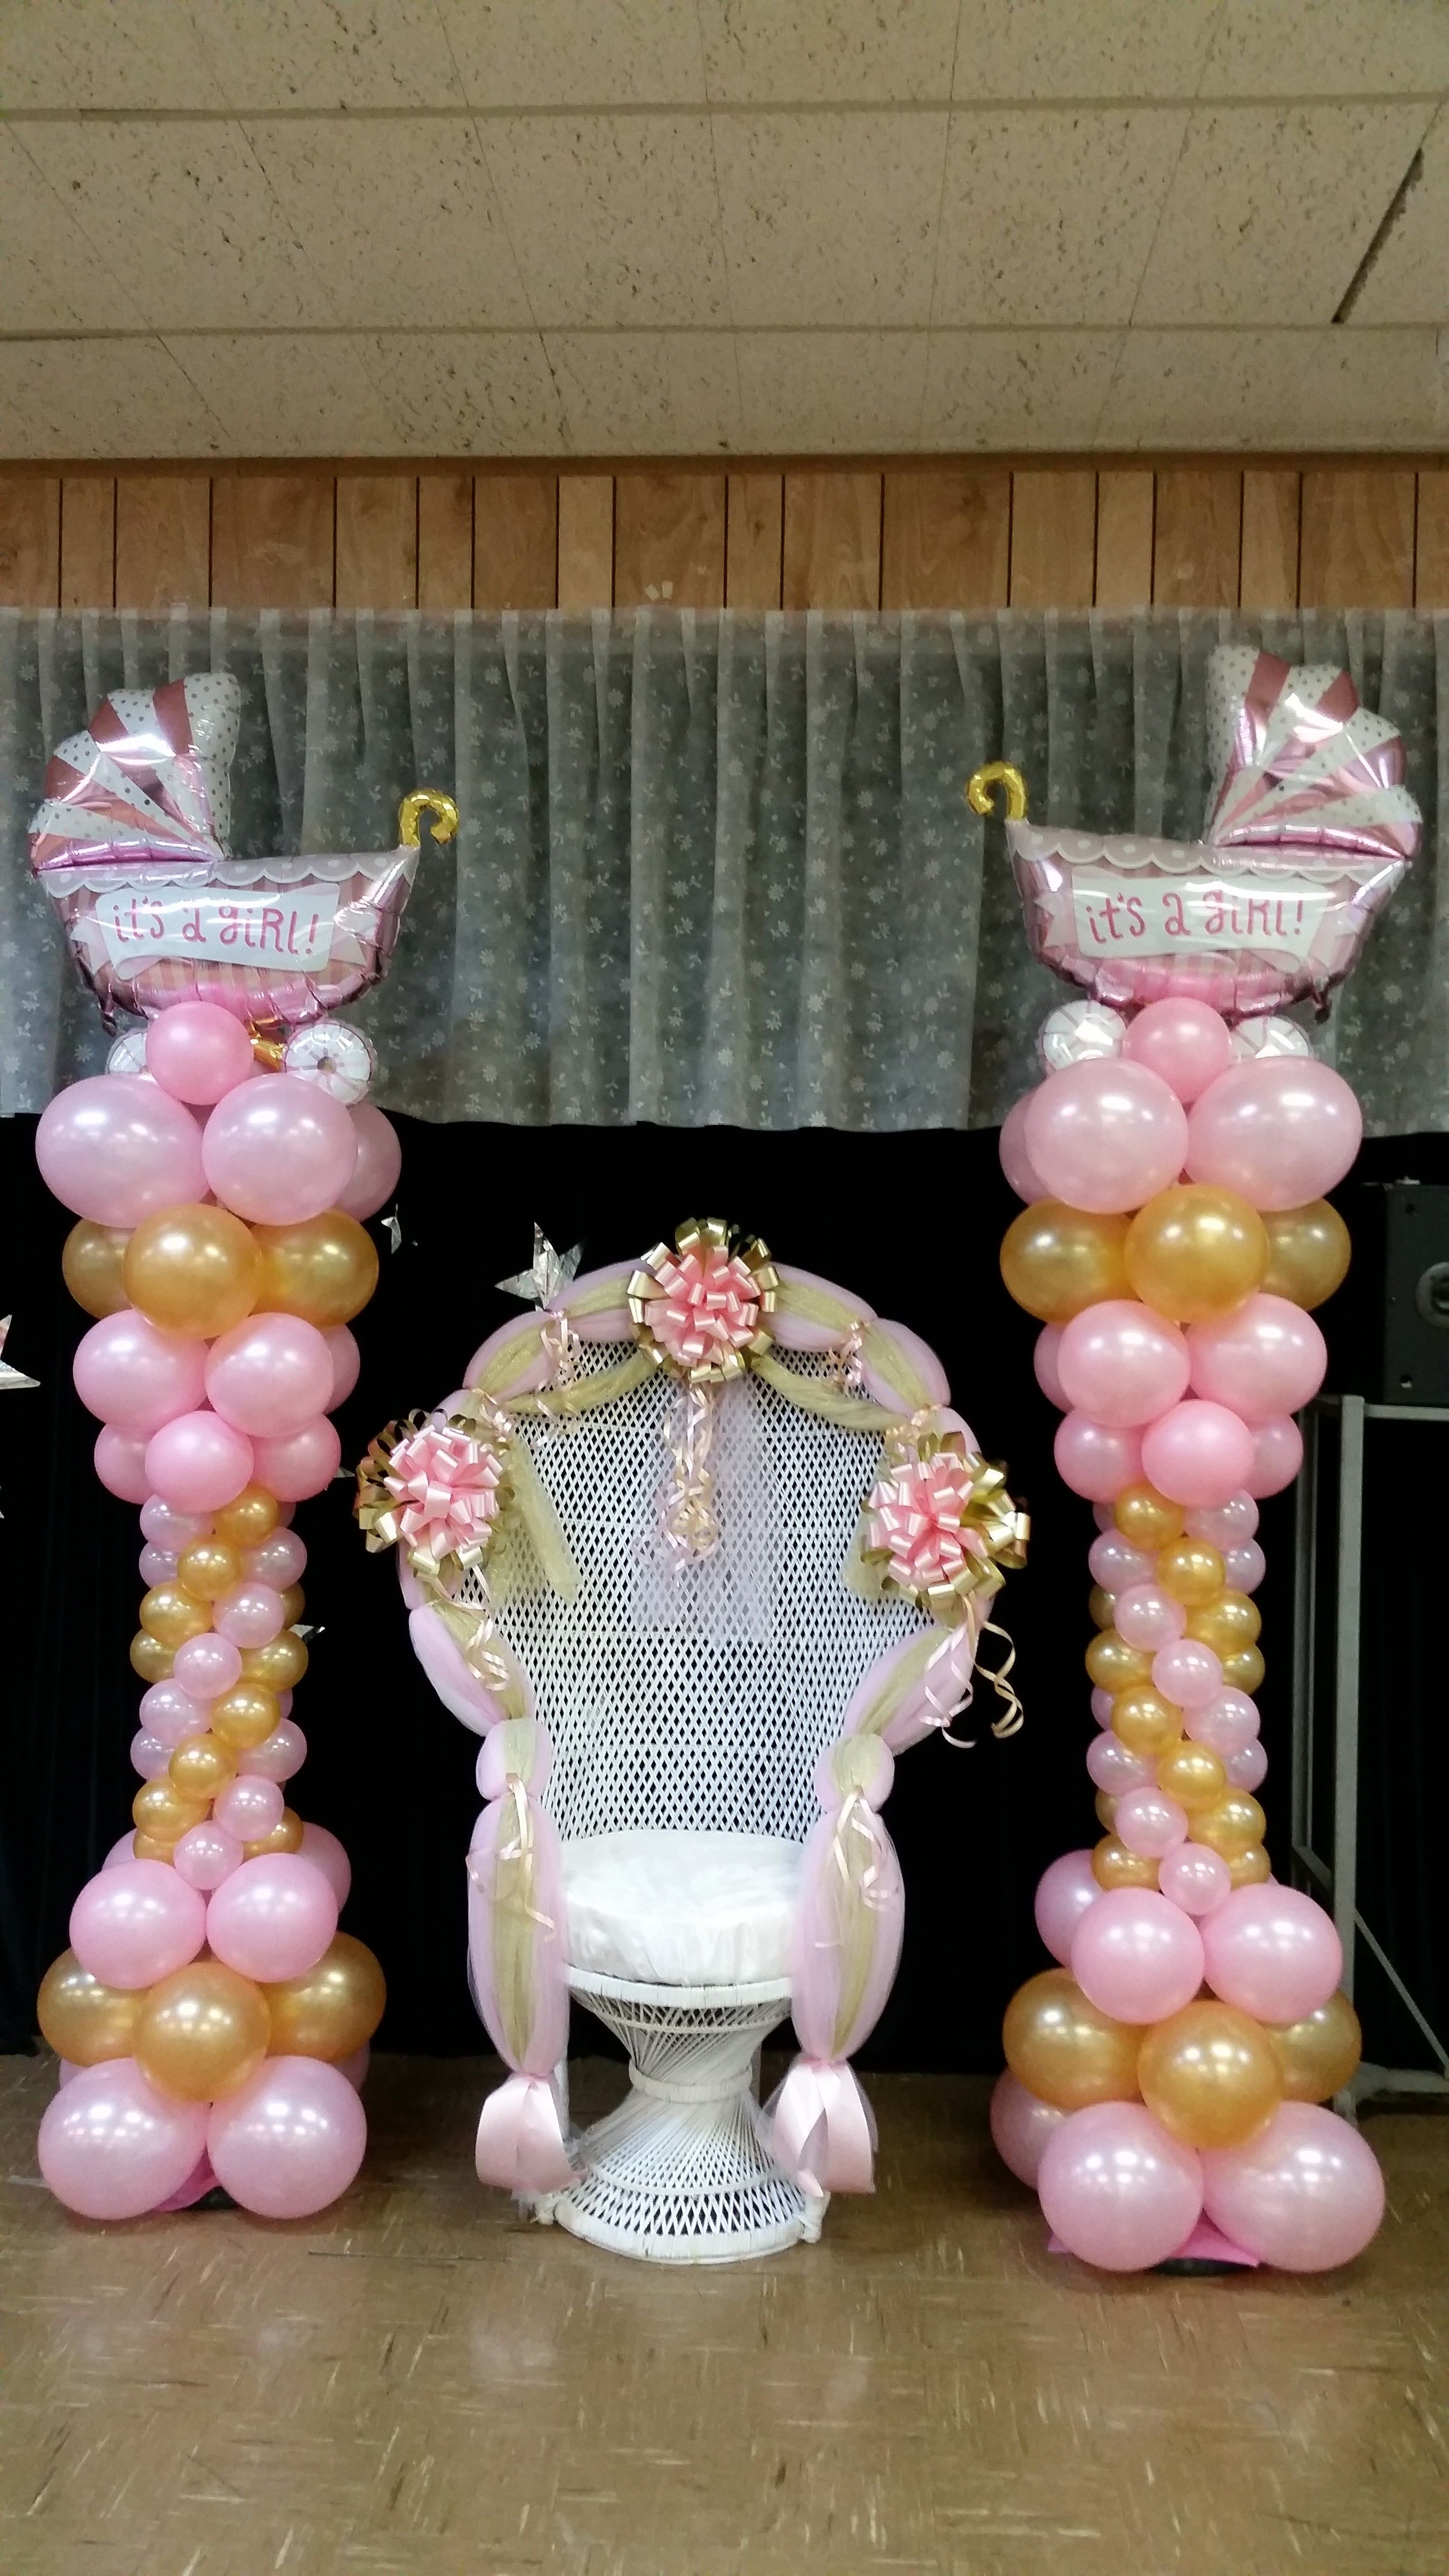 decorating chair for baby shower 2017 gmc acadia with captains chairs and balloon columns